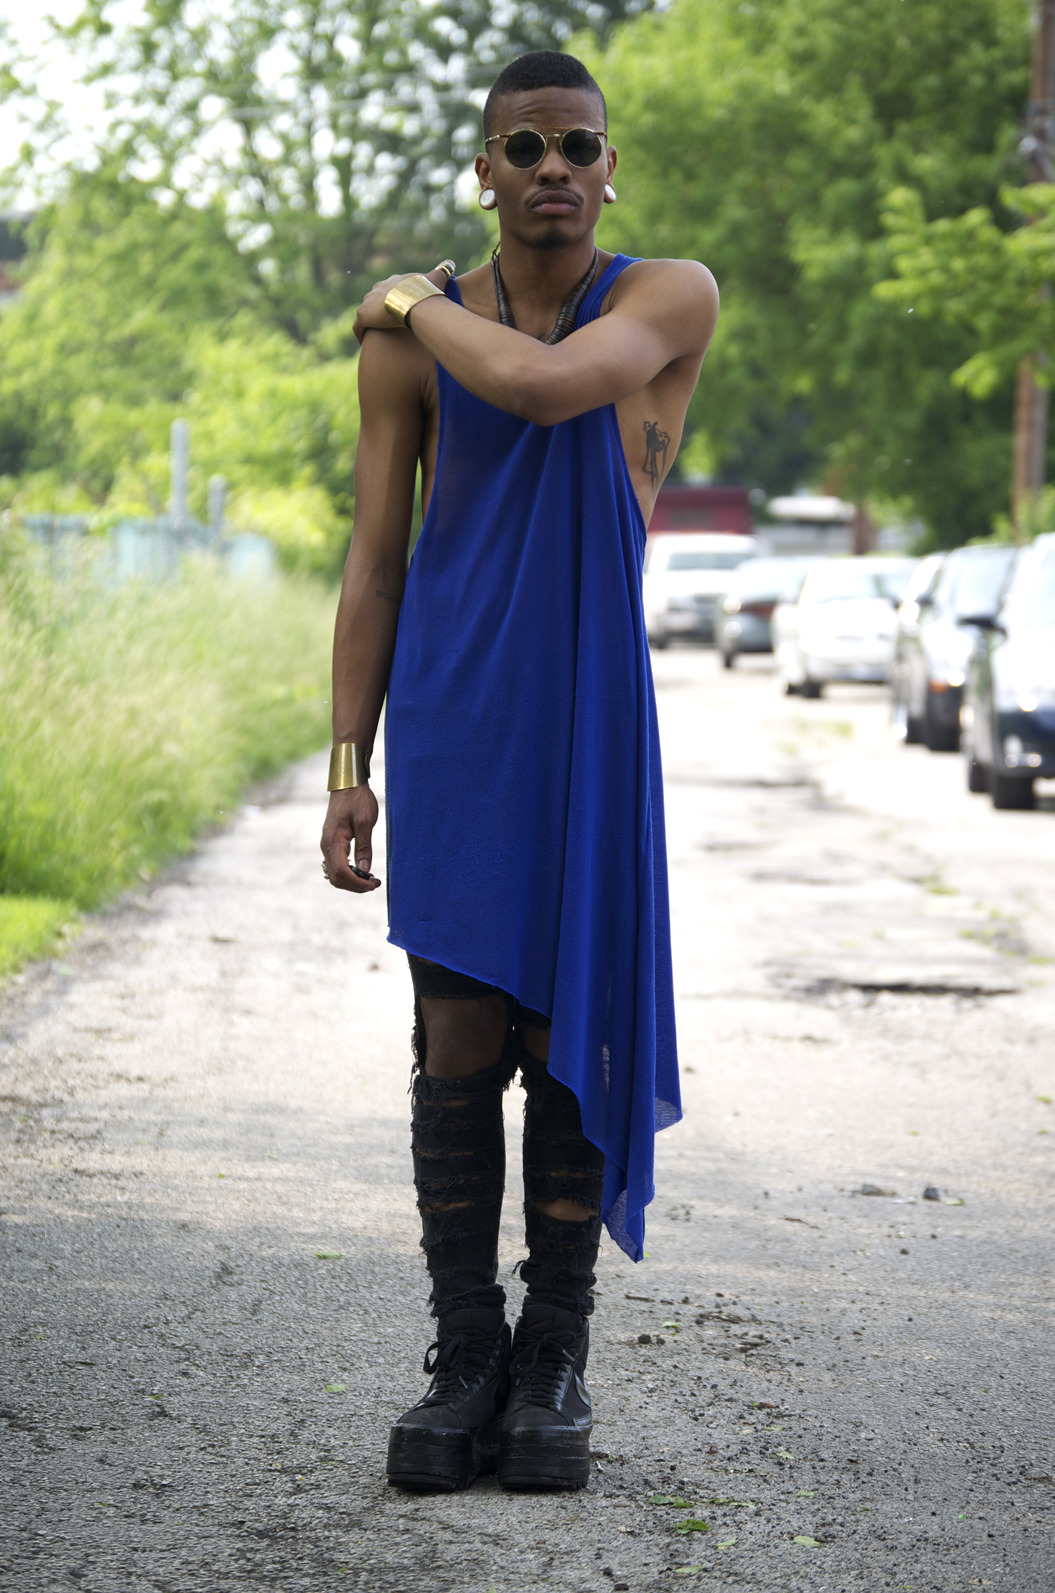 blackfashion:  Marcus Branch of SKLTNmagazine